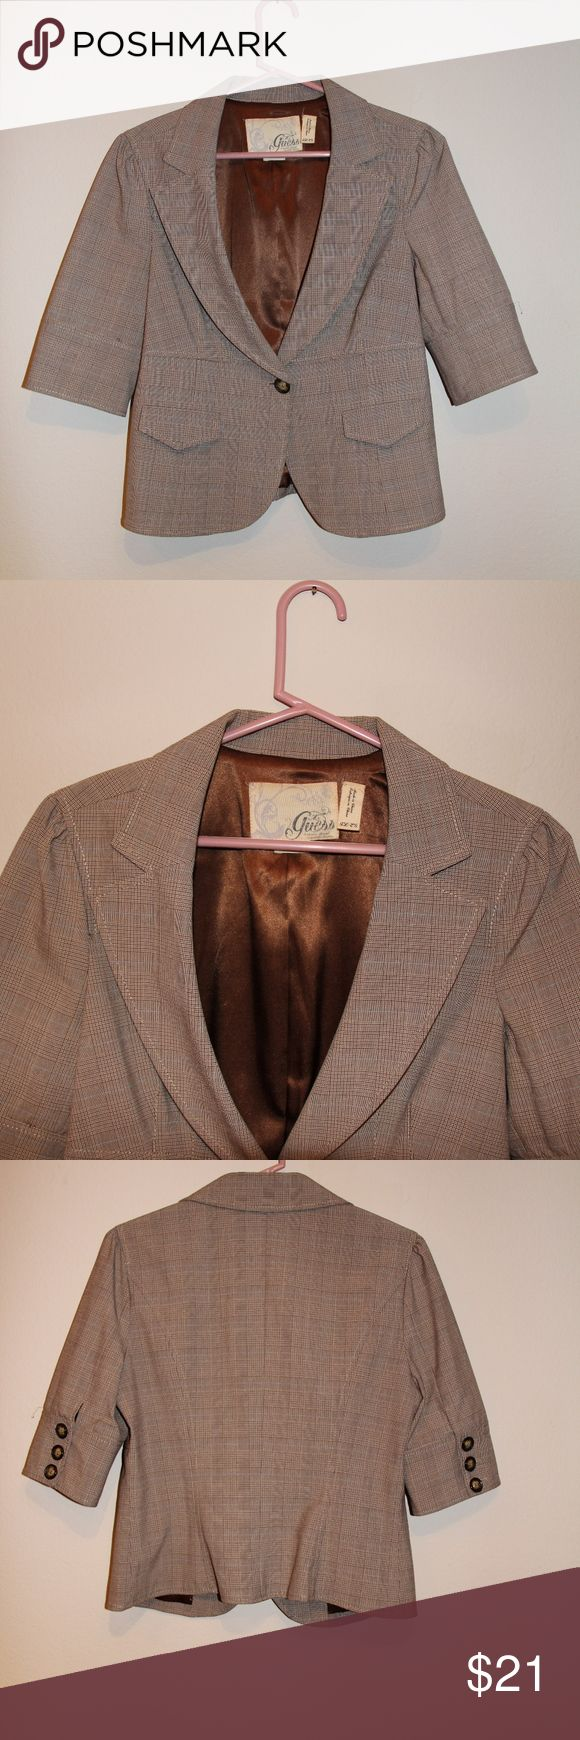 Guess Tan Jacket Blazer Women's Sz XL Guess Women's Tan Jacket Size XL Excellent condition with no marks, stains or rips of any kind. Jacket is in great condition and will be an wonderful addition to any woman closet. Guess Jackets & Coats Blazers